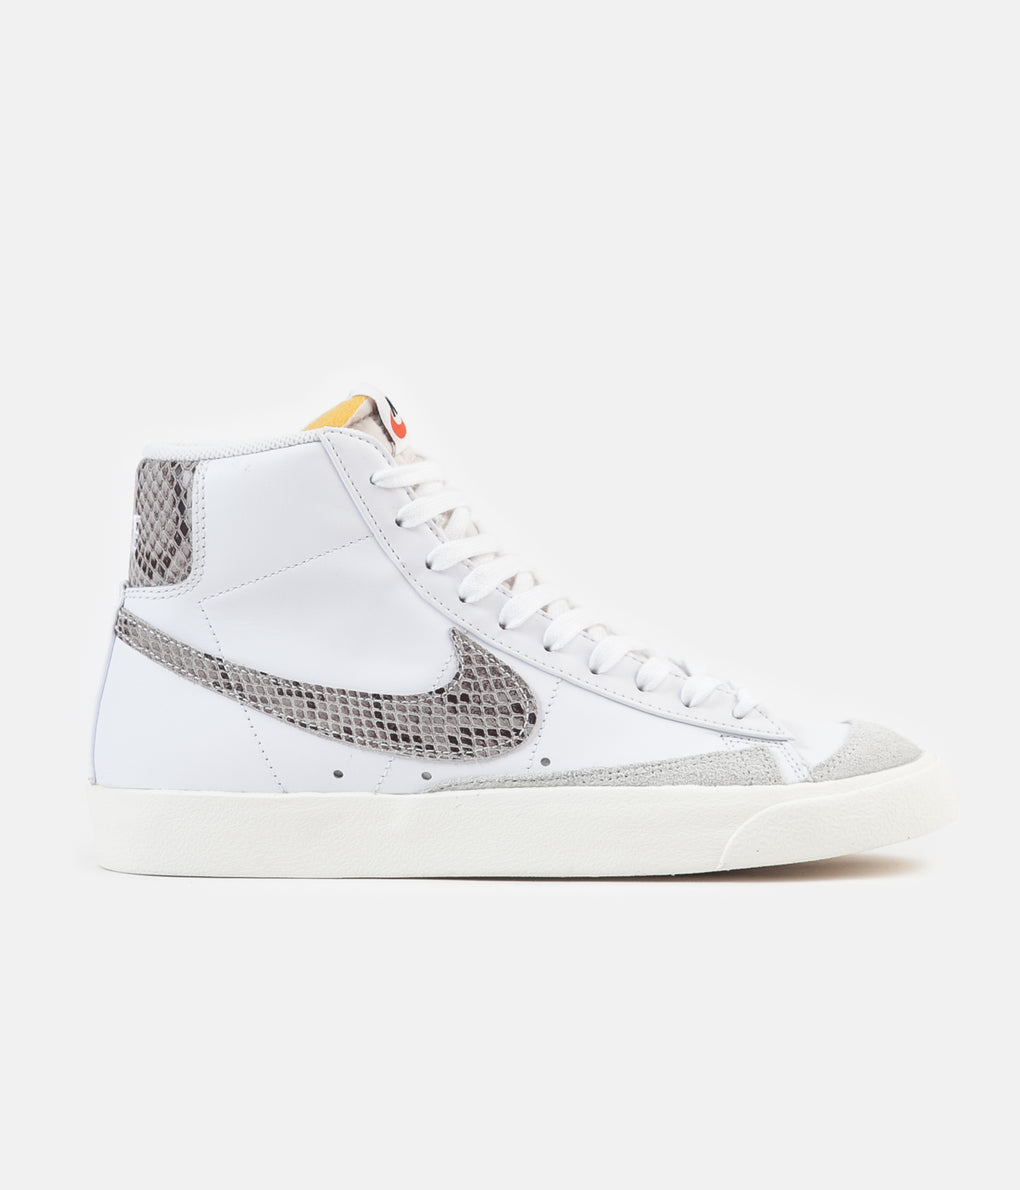 Nike Blazer Mid 77 Vintage Shoes - White / Sail